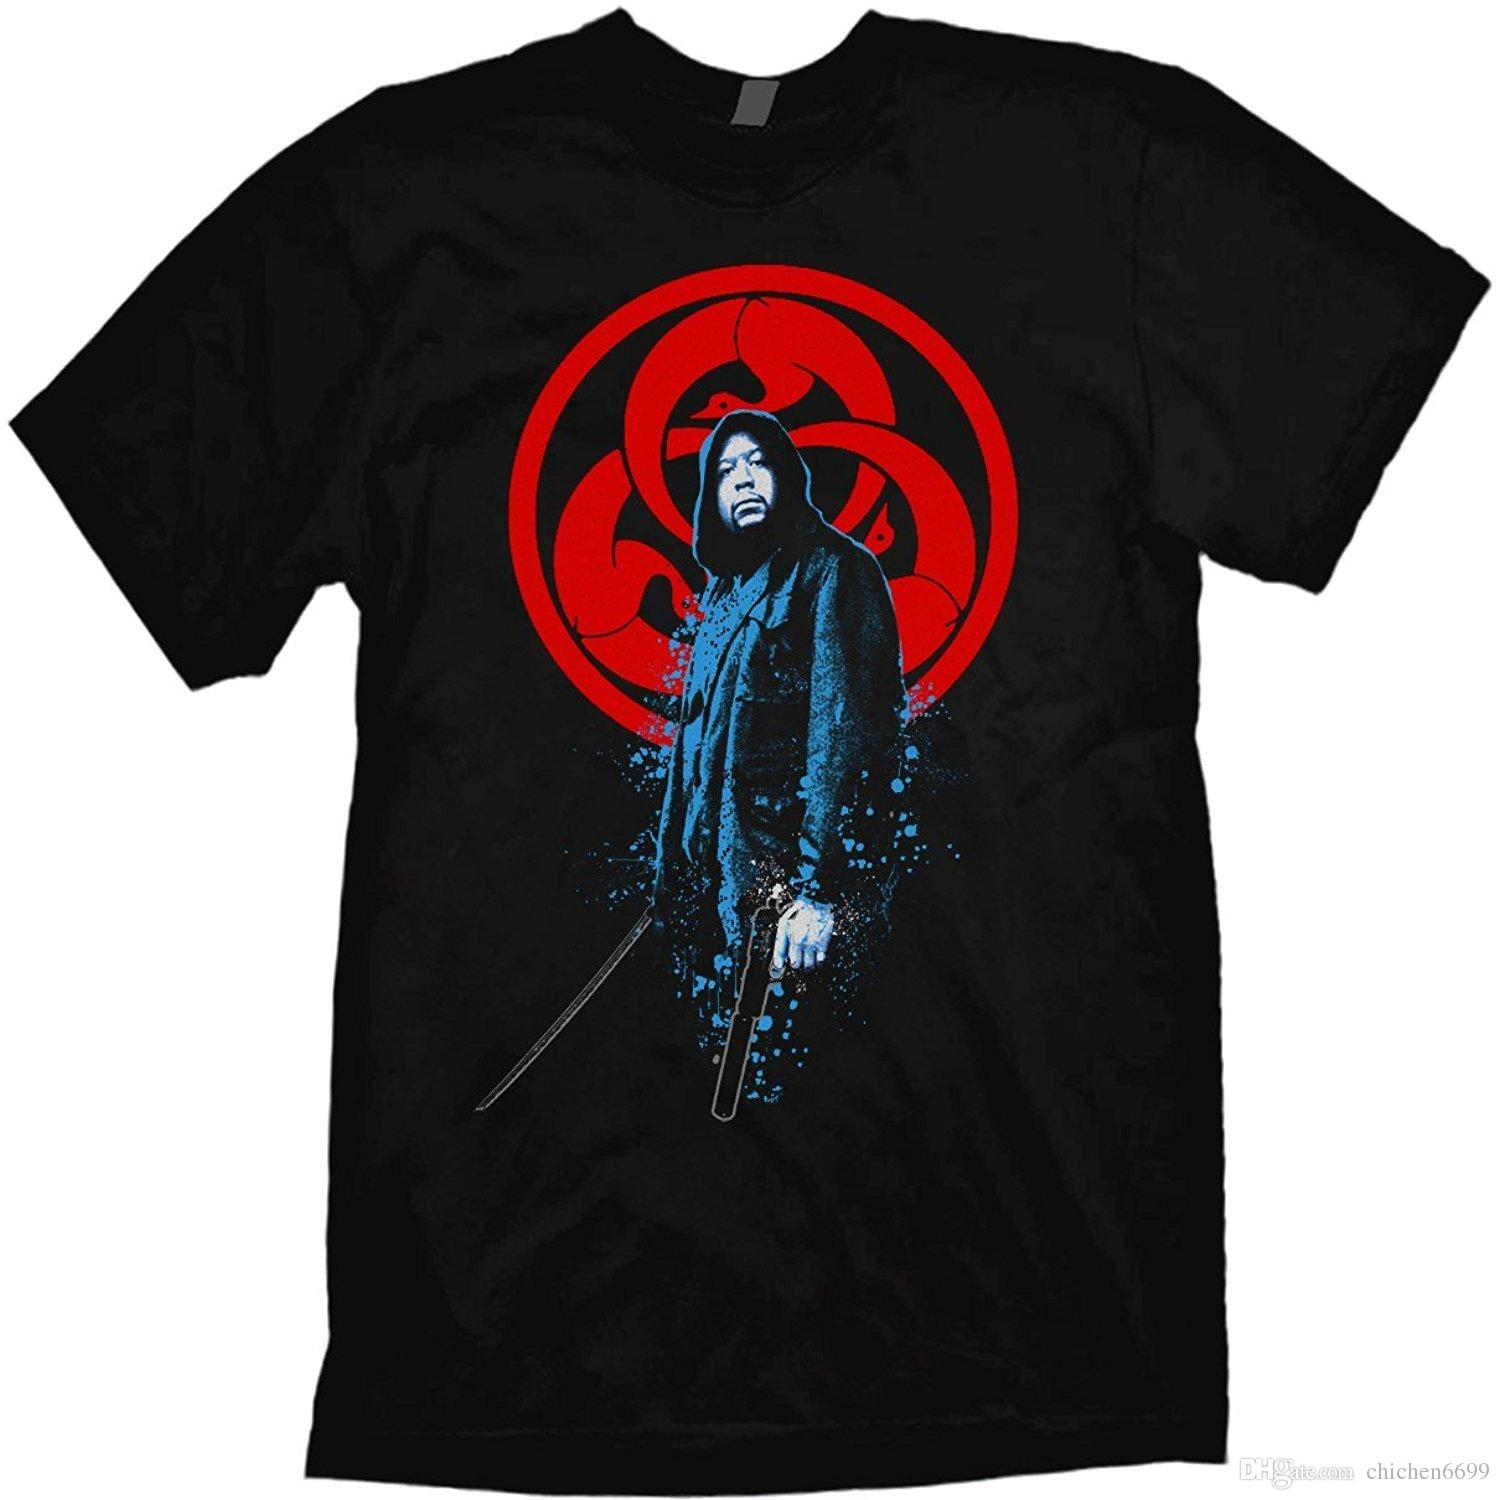 0ed2772591d Wants The D D Funny Board Game Tshirts Graphic Dice Game ShirtJared Swart  Artwork   Apparel Ghost Dog T Shirt The Way Of The Samurai T Shirt Tee Best  Funny ...